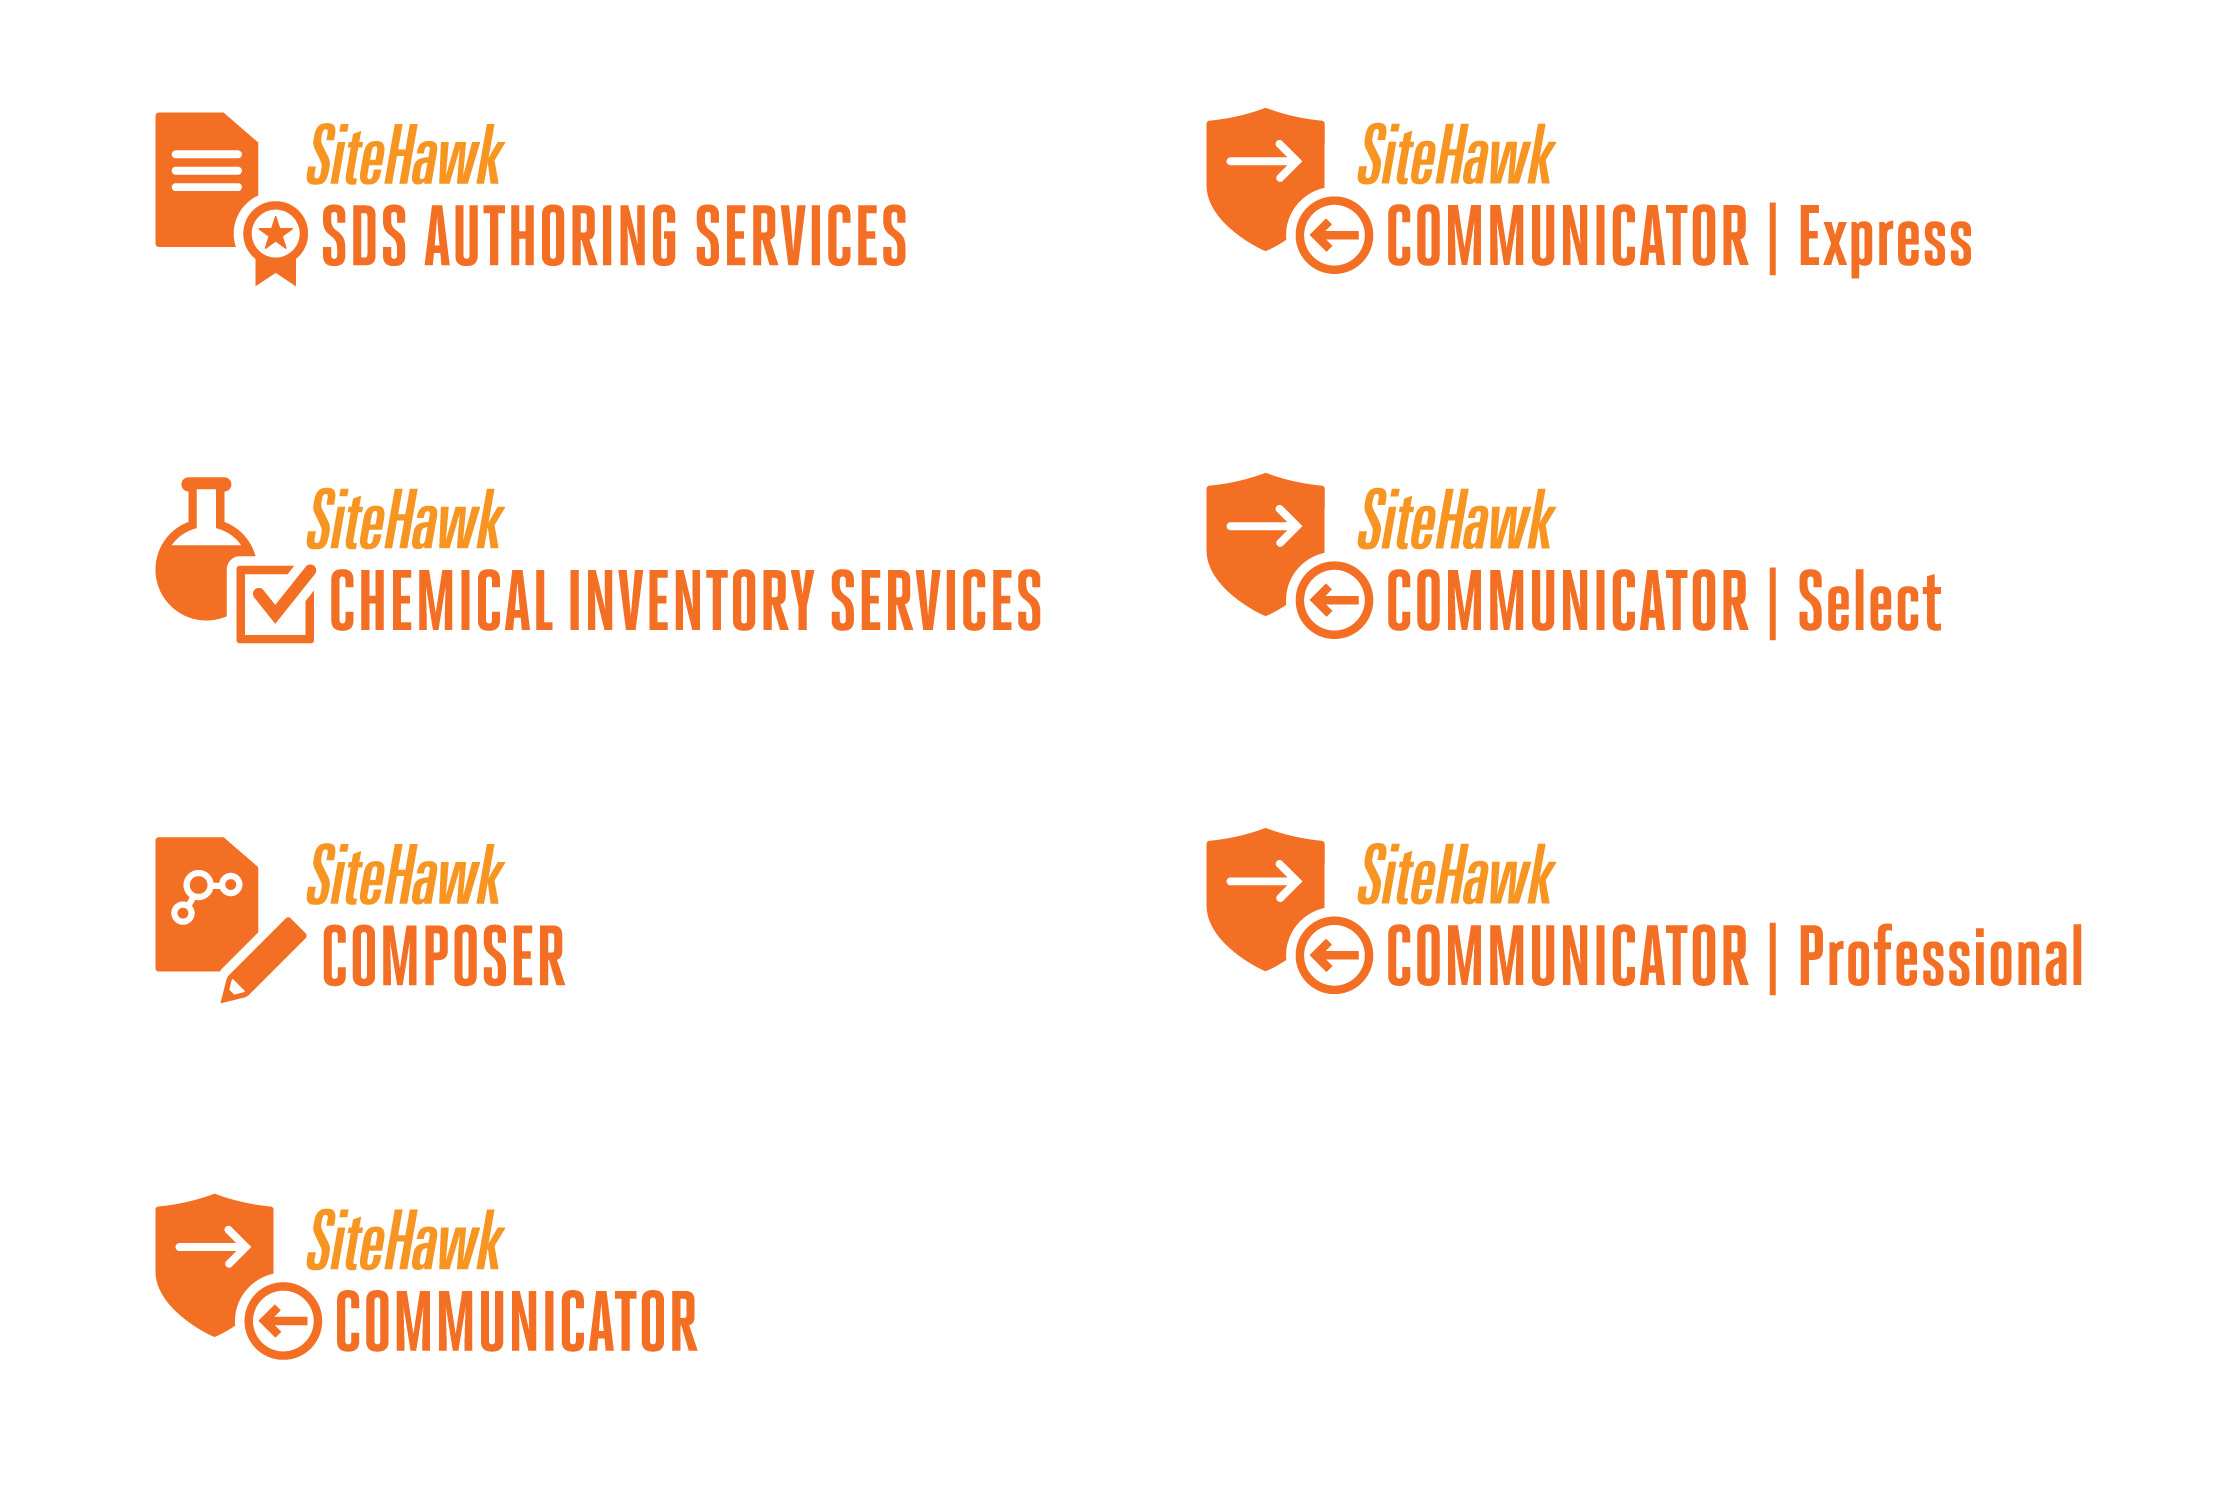 Products and Services Icons